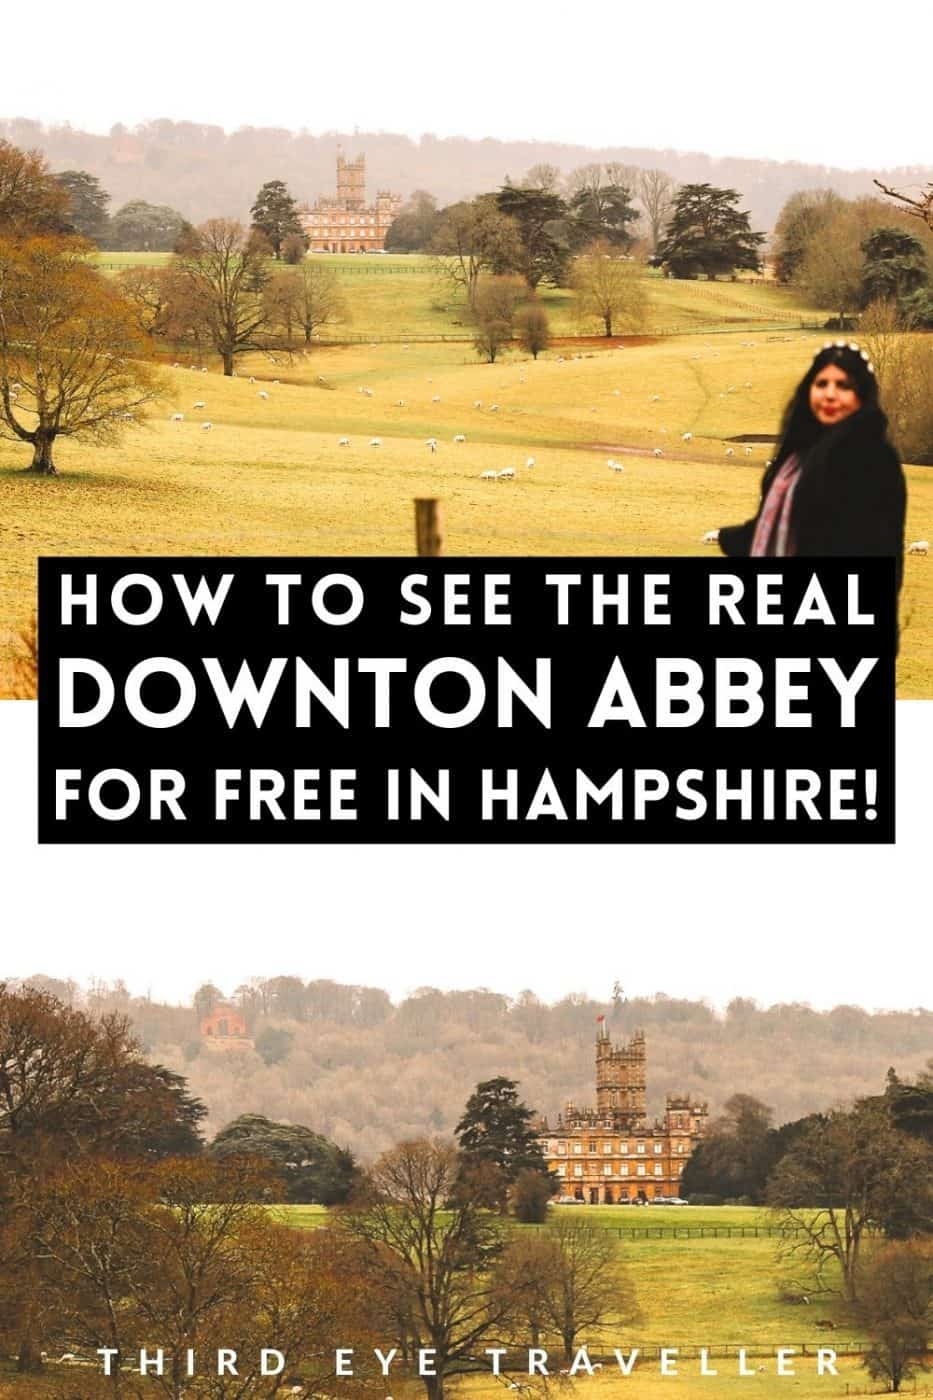 Highclere Castle for free public footpaths Downton Abbey